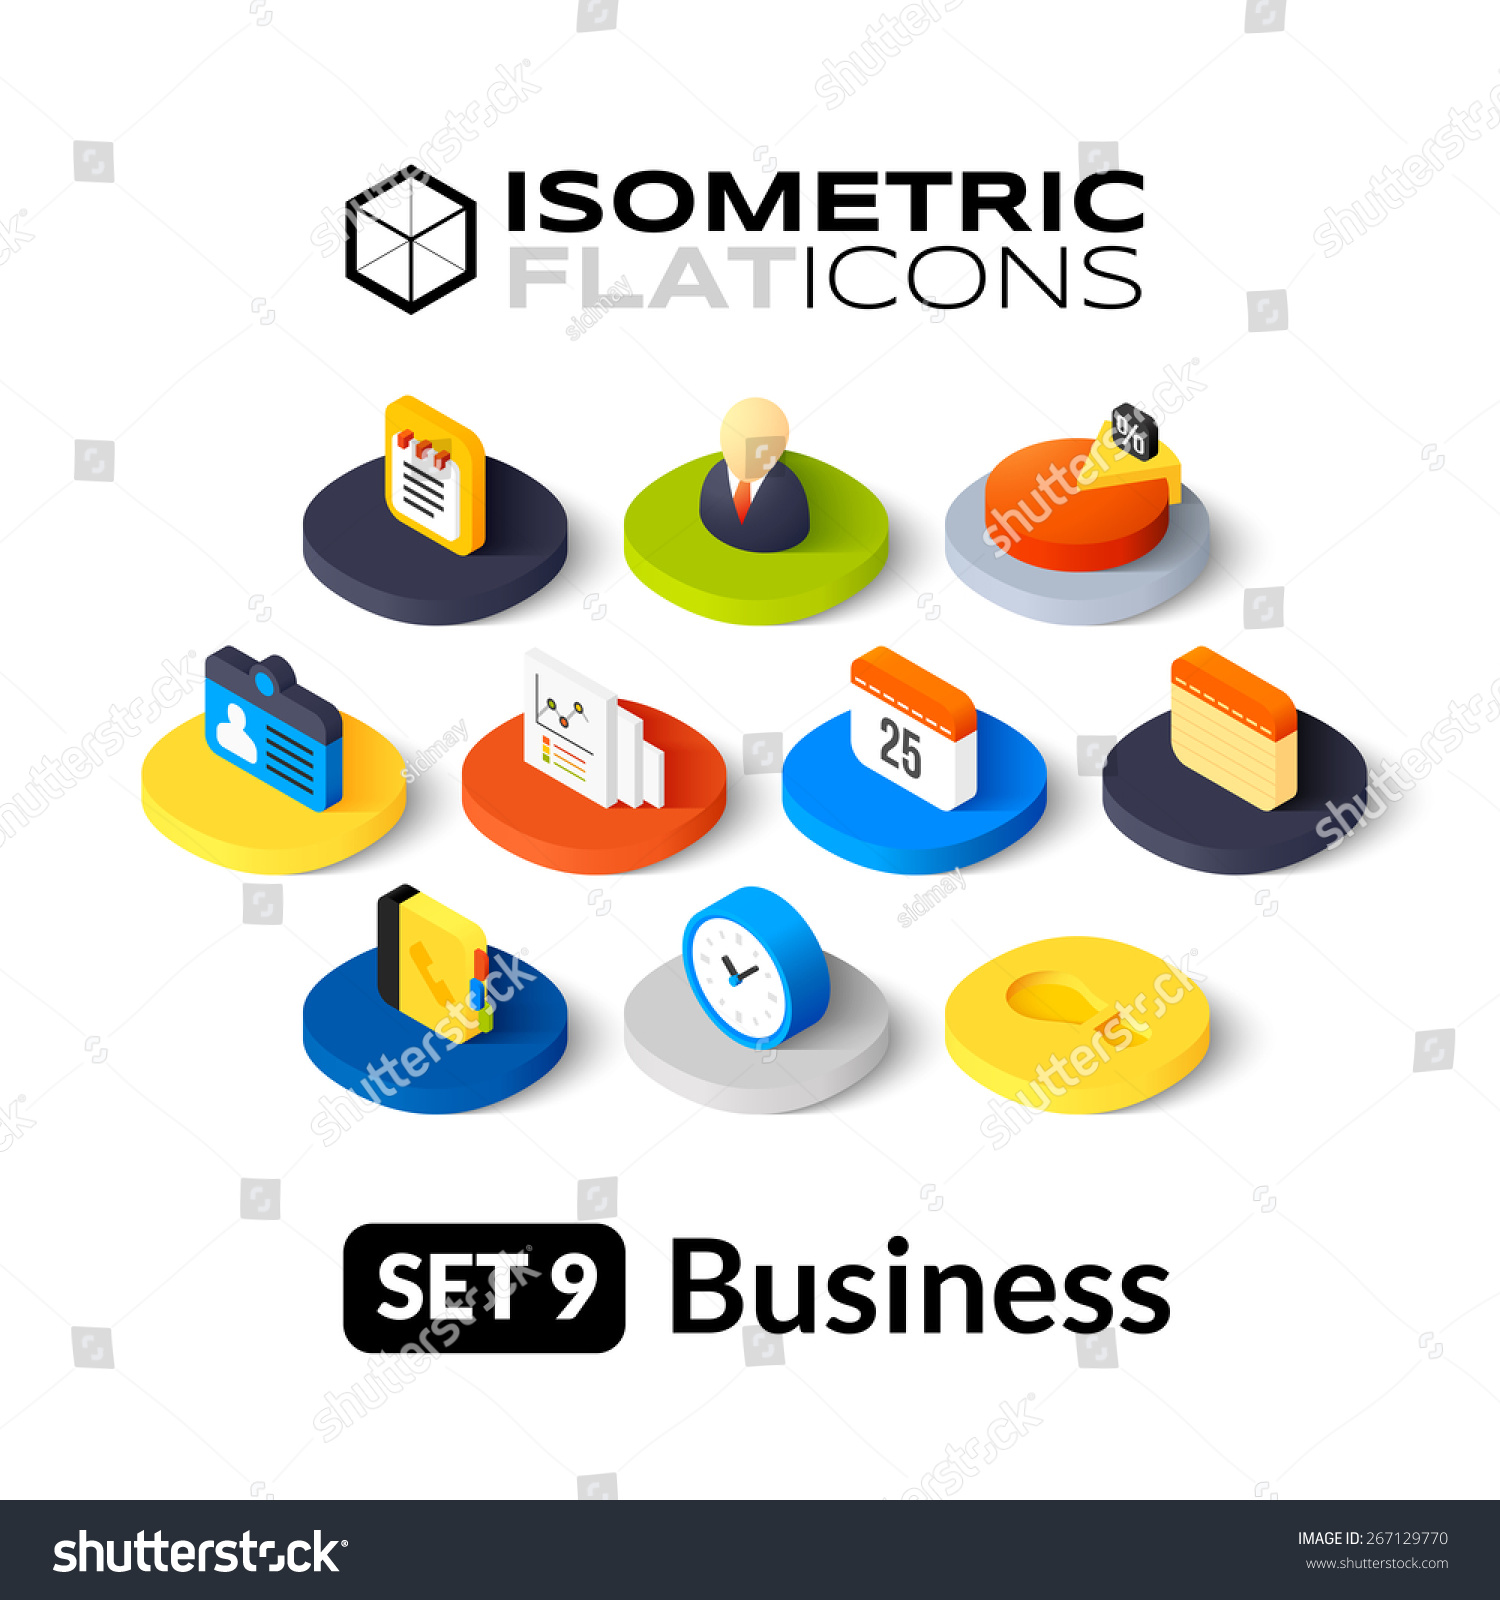 Stock Vector Isometric Flat